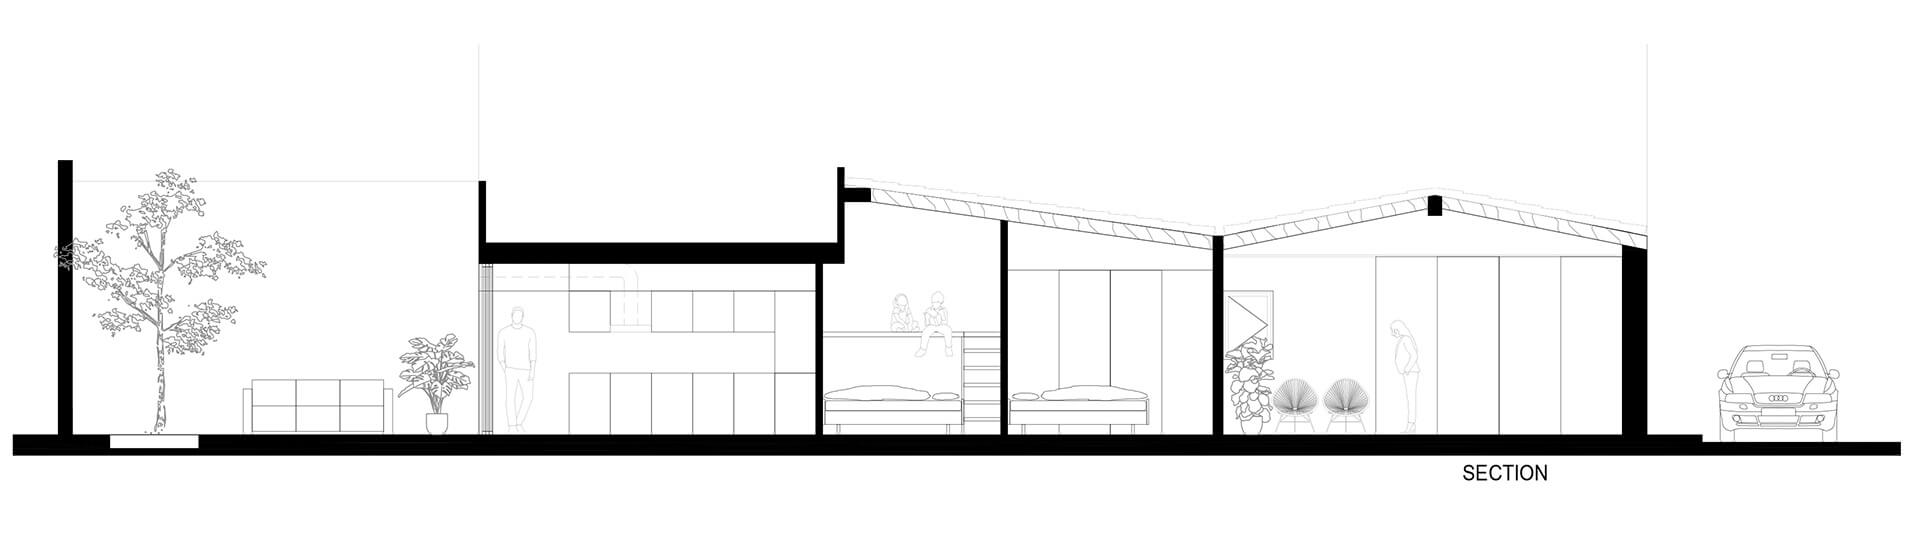 Section of the house showcases how skylights allow light to permeate through the roof | Portixol | Home | PMA Studio | STIRworld